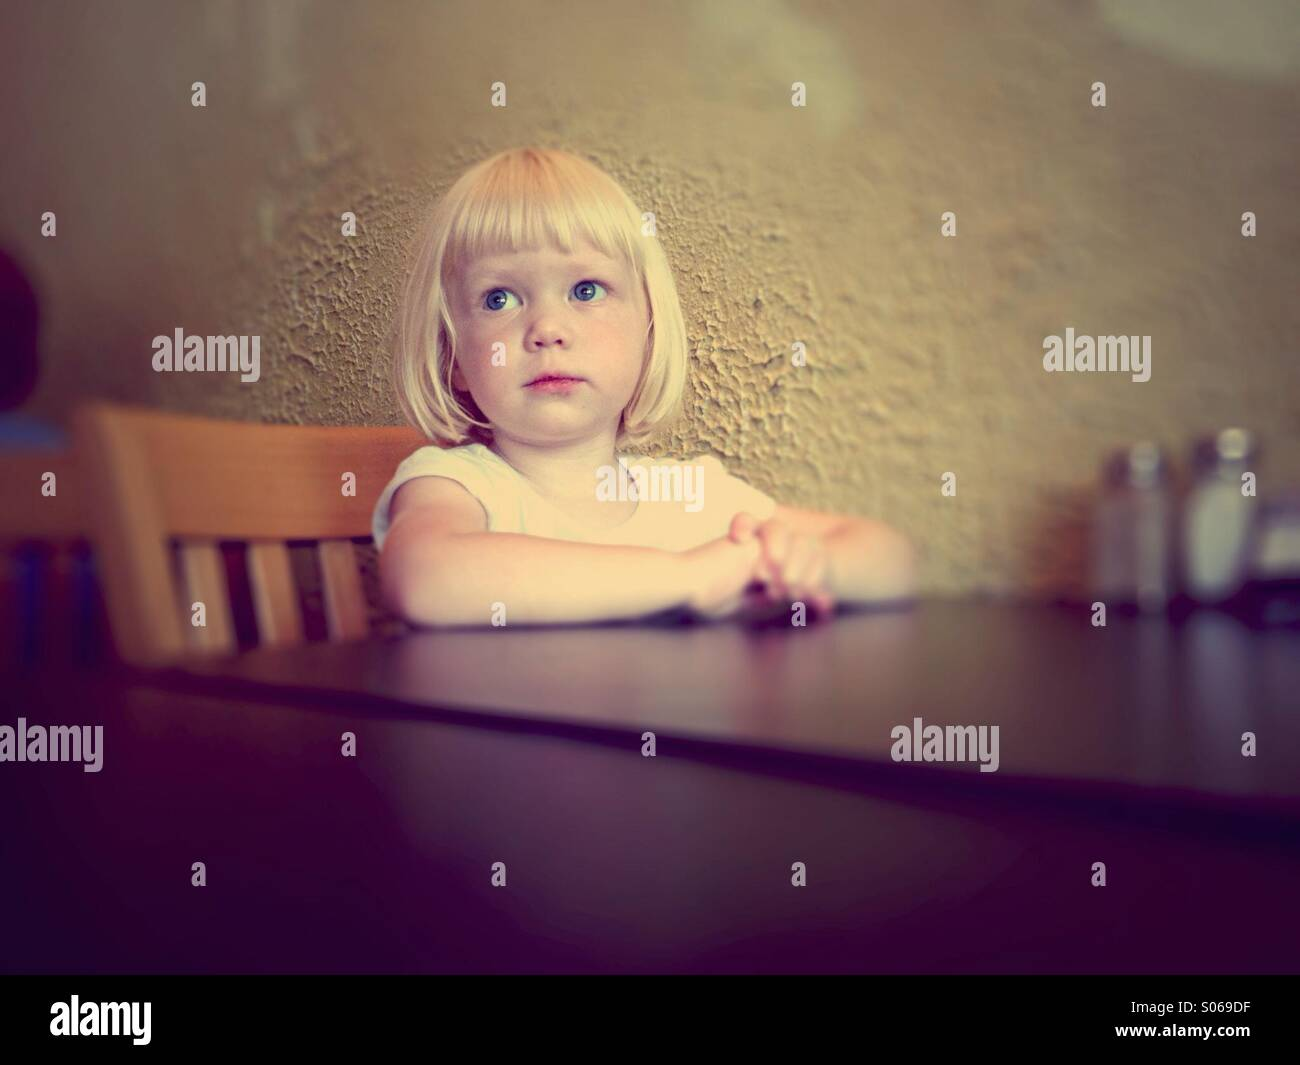 Cute Young blond girl sitting at a table patiently awaiting a meal at a restaurant. - Stock Image